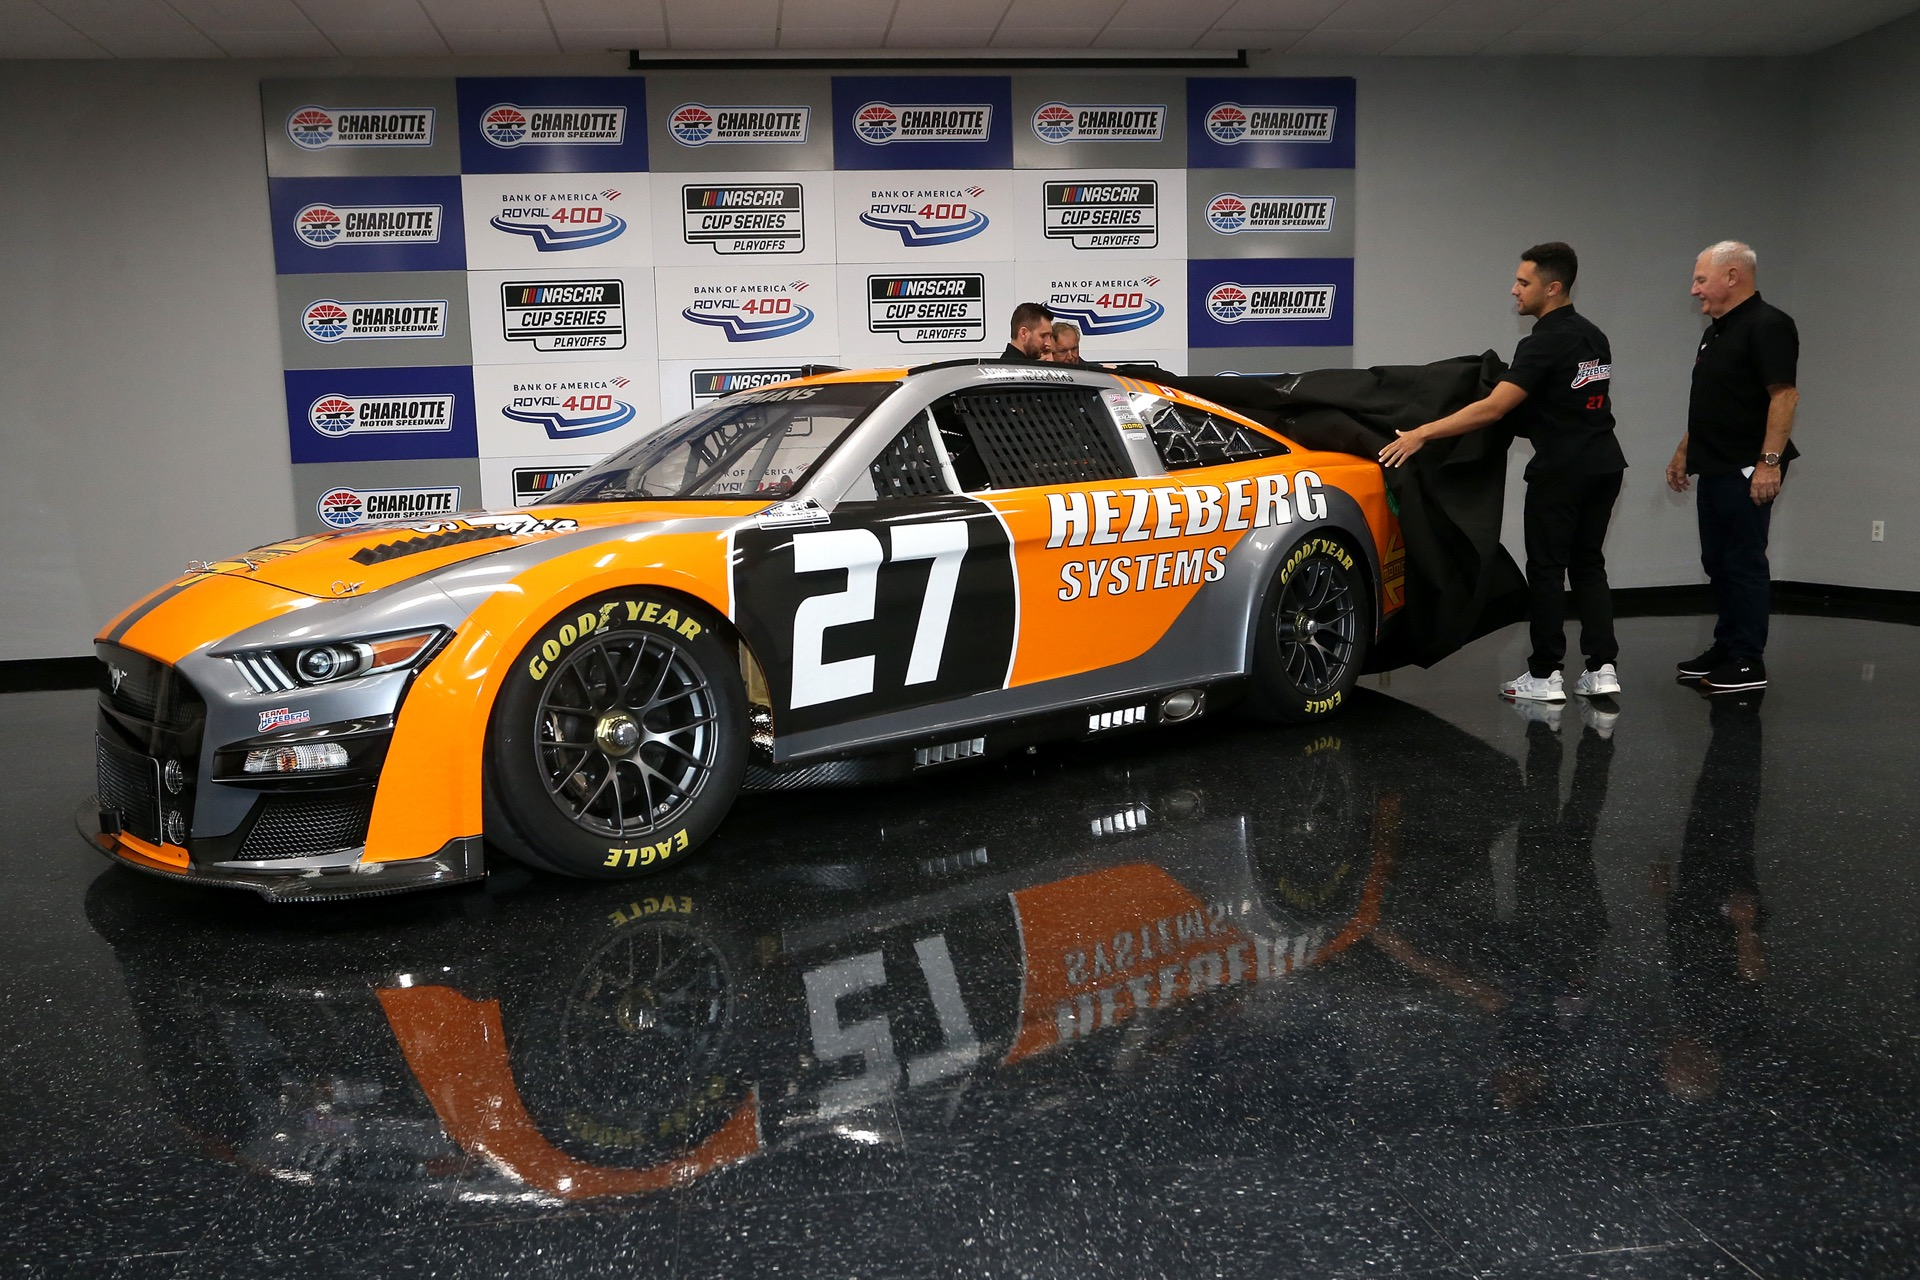 CONCORD, NORTH CAROLINA - OCTOBER 09: Driver Loris Hezemans, unveils the #27 Next Gen Team Hezeberg car he will drive in selected races of the 2022 NASCAR Cup Series during a press conference held prior to the NASCAR Xfinity Series Drive for the Cure 250 presented by Blue Cross Blue Shield of North Carolina at Charlotte Motor Speedway on October 09, 2021 in Concord, North Carolina. (Photo by Brian Lawdermilk/Getty Images) | Getty Images